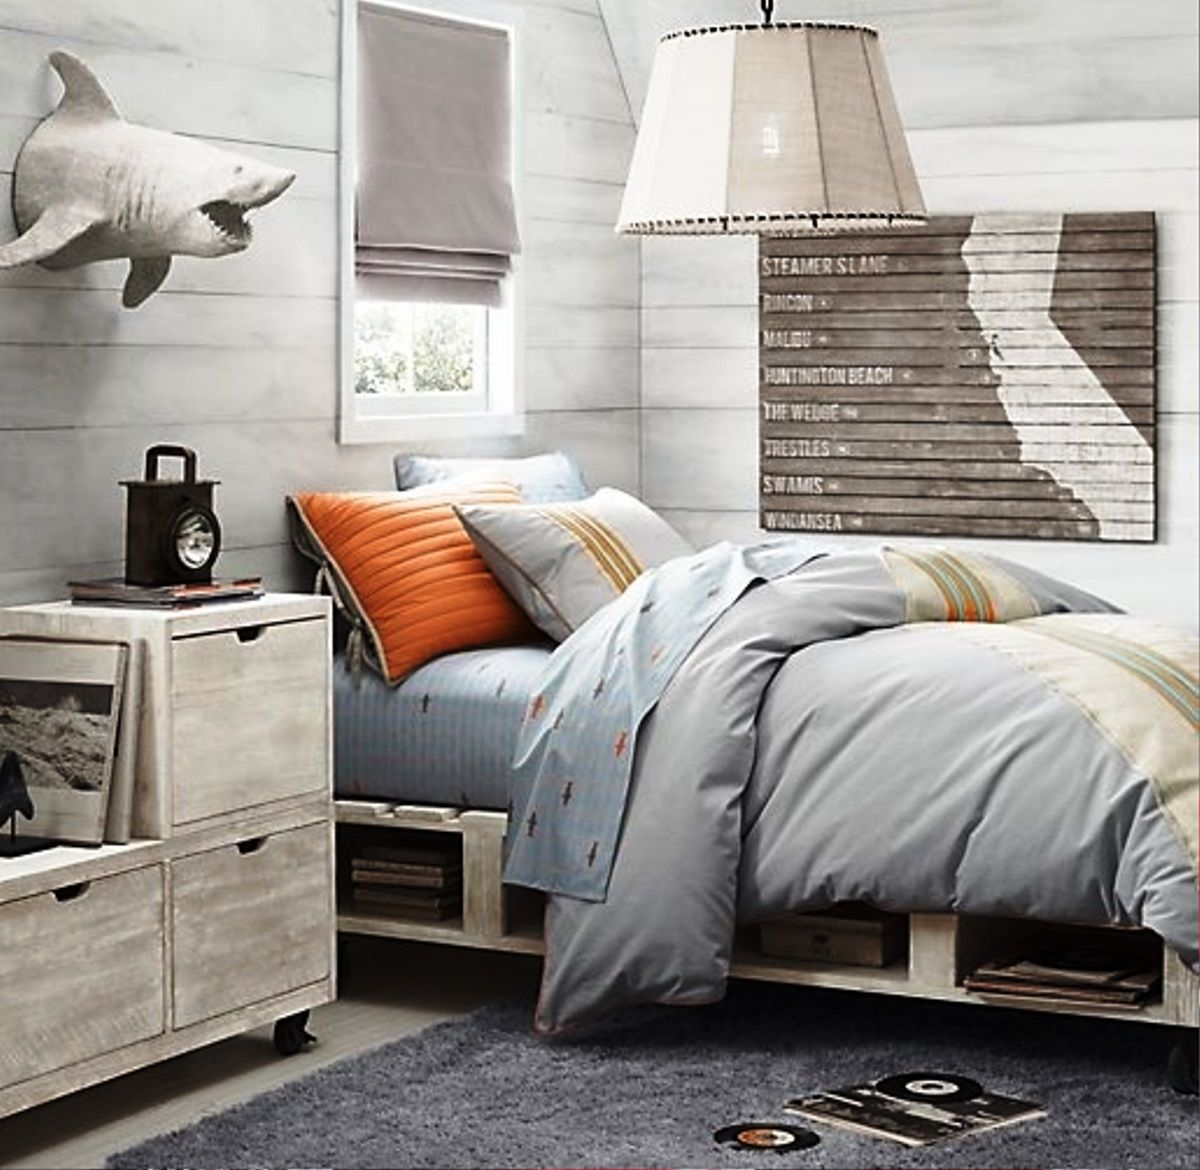 images about boys room ideas on pinterest train tracks wall murals bedroom and train bed: cheap kids bedroom ideas